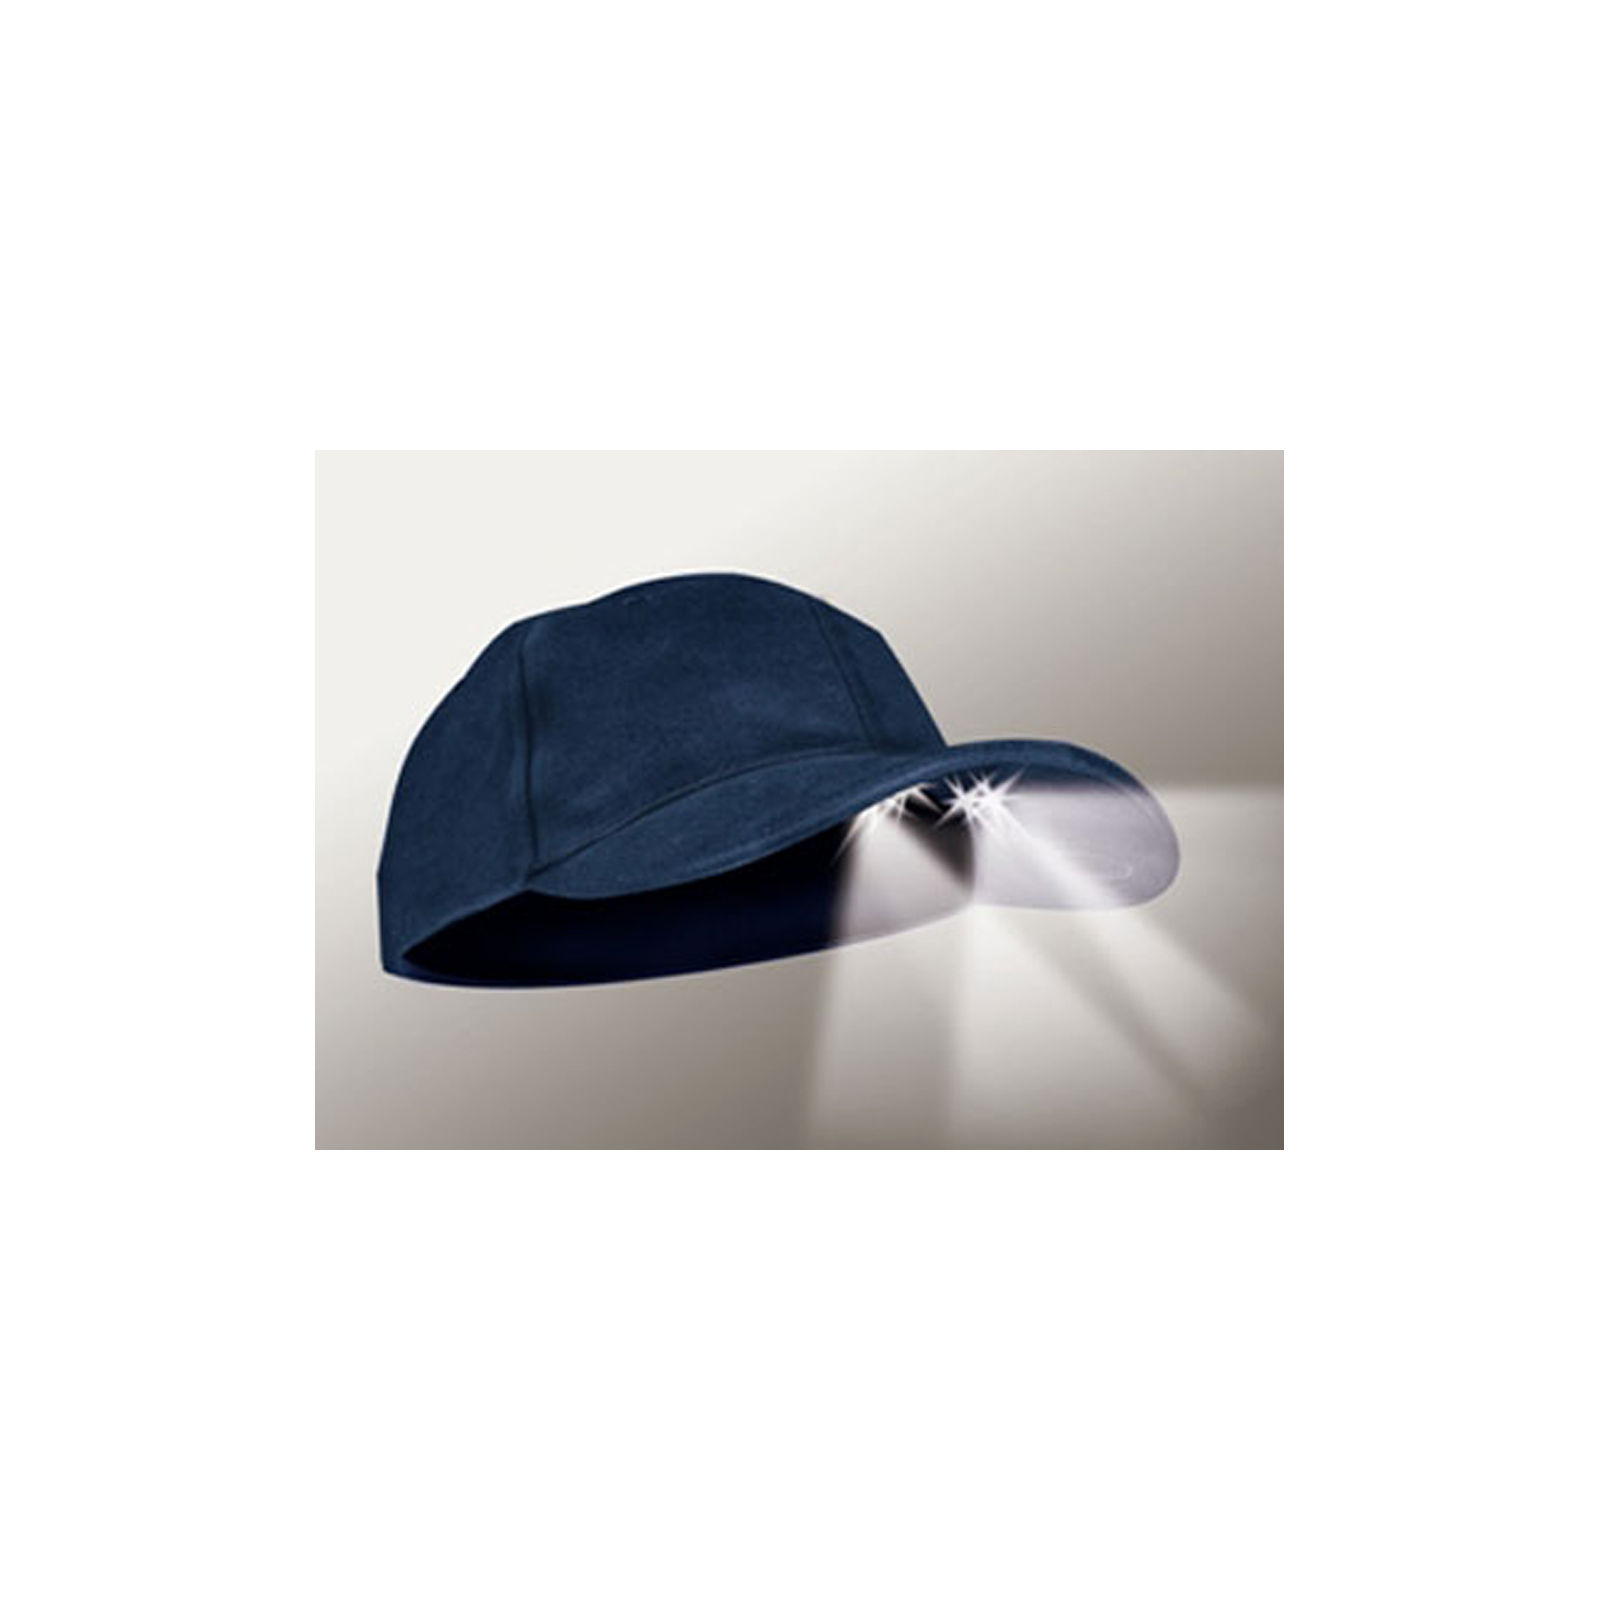 Panther Vision Powercap Stealth 2575 4 Led Navy Structured